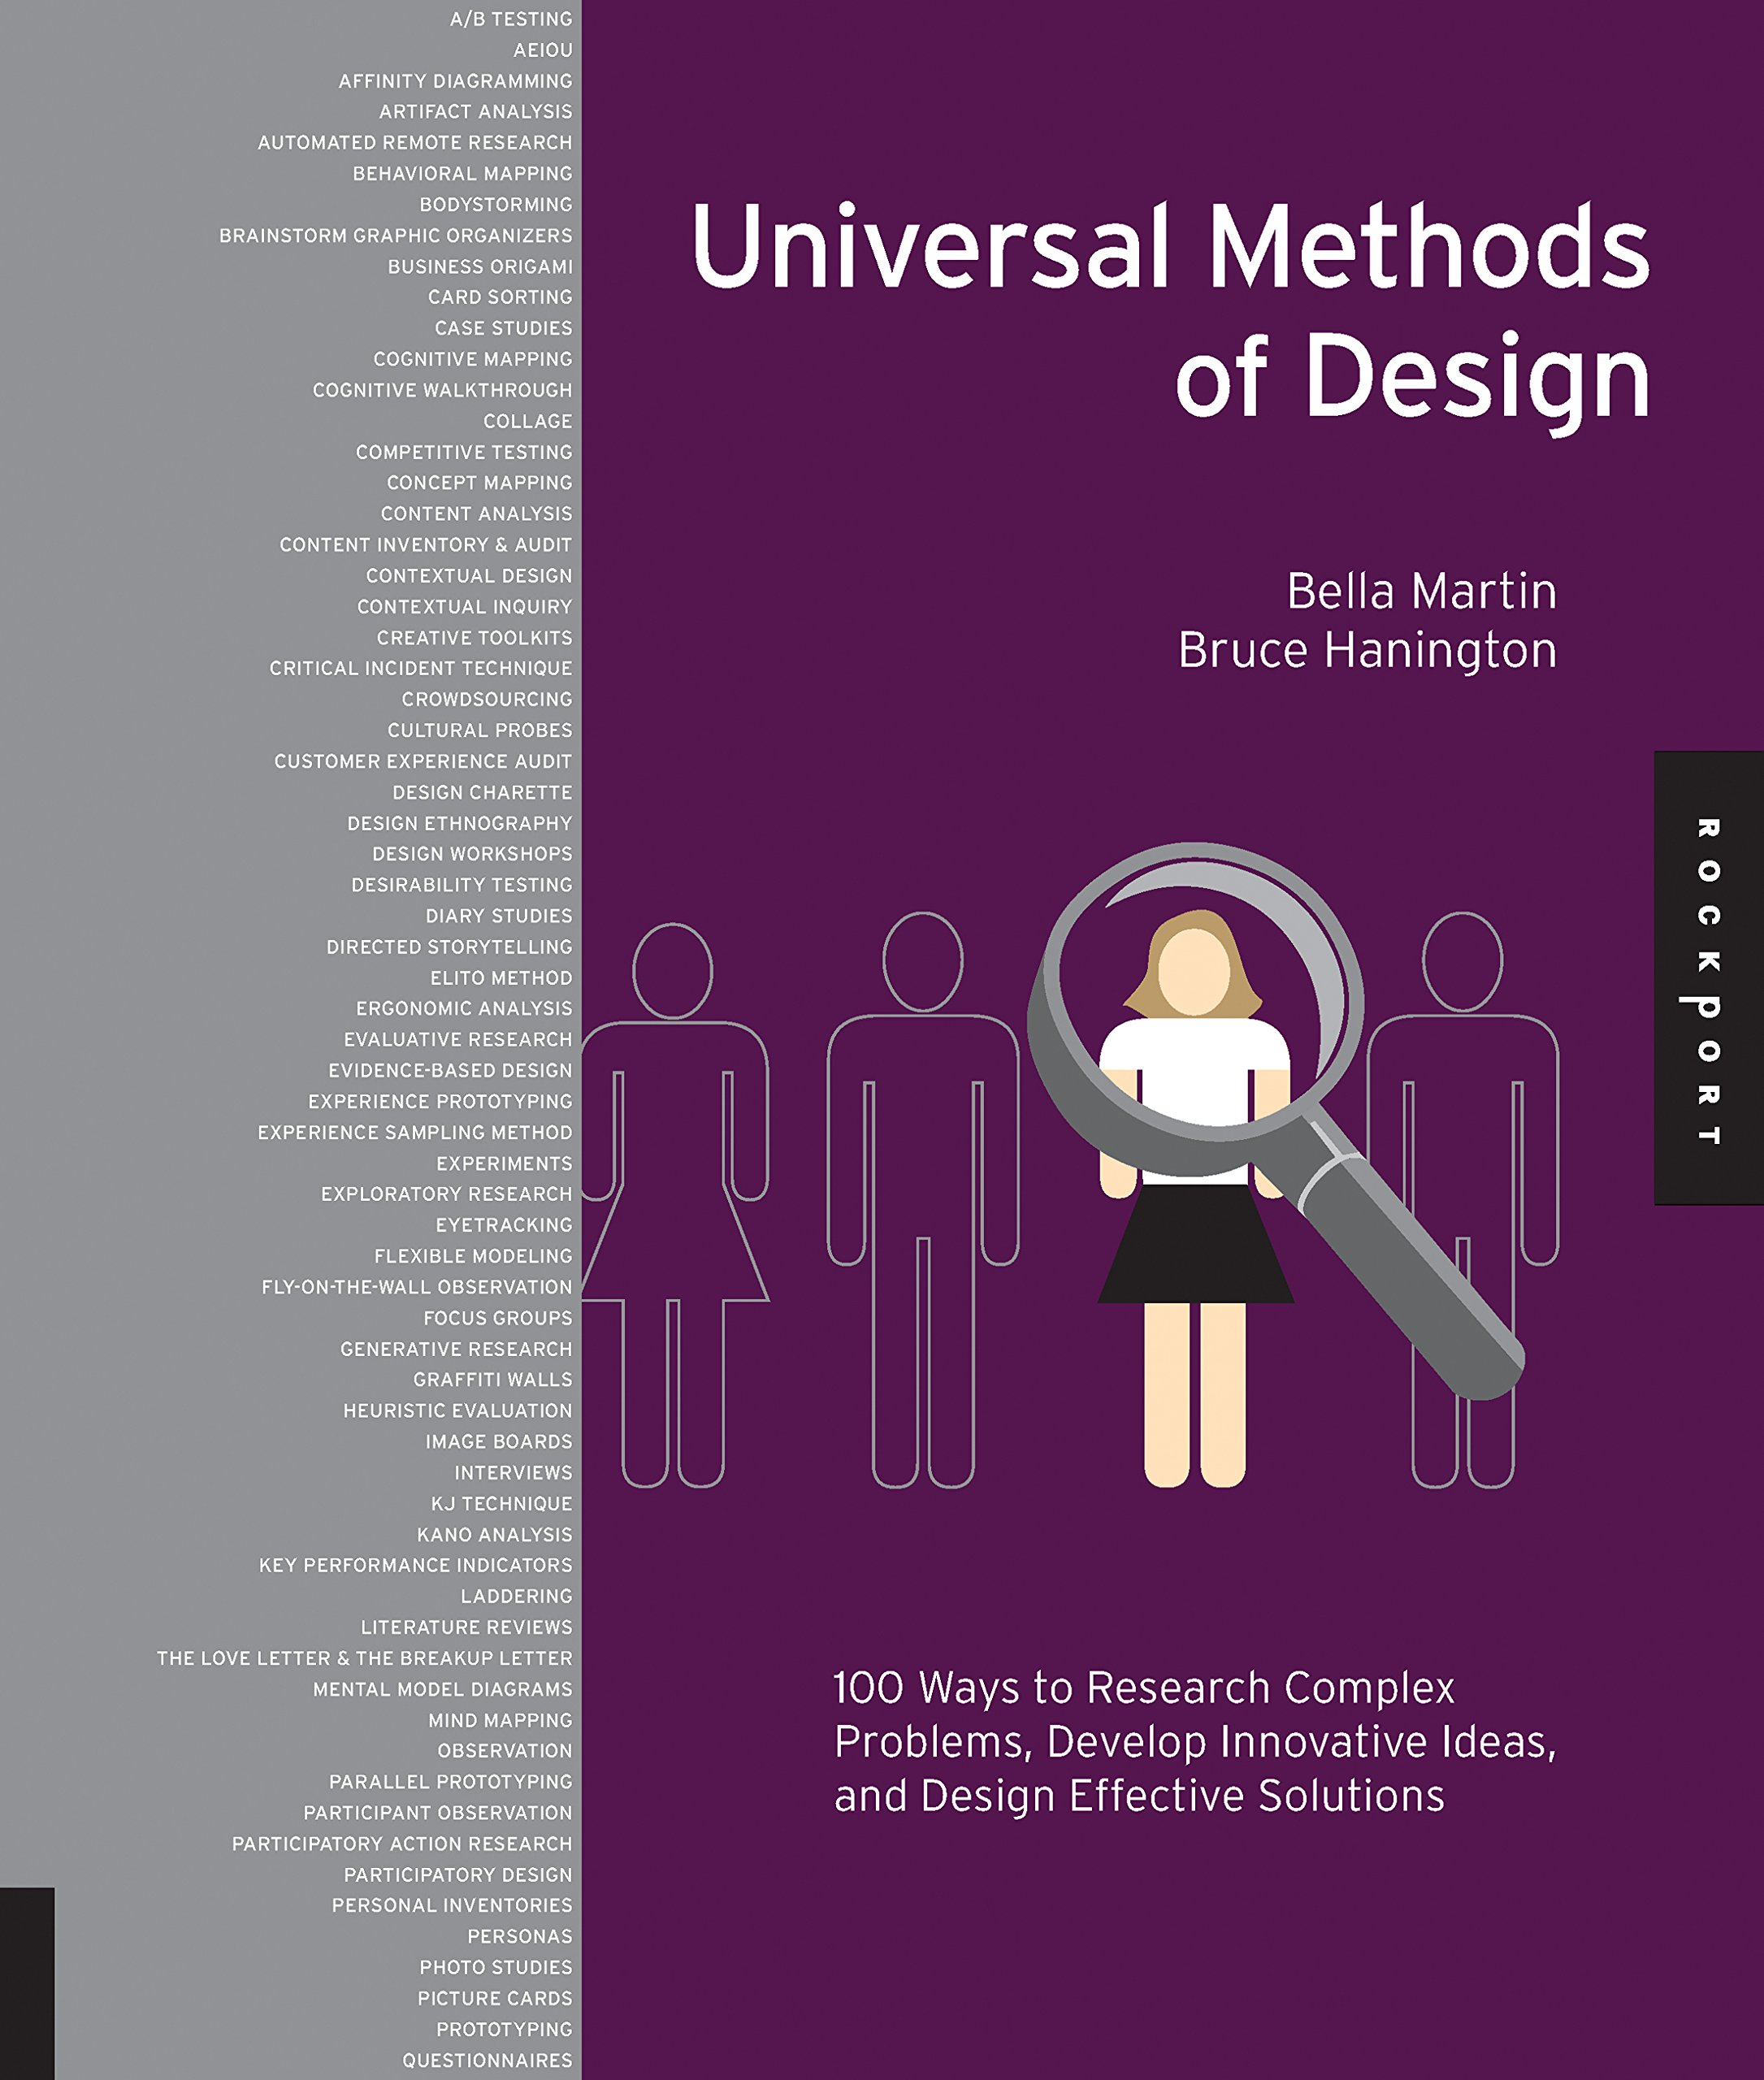 universal methods of design book cover